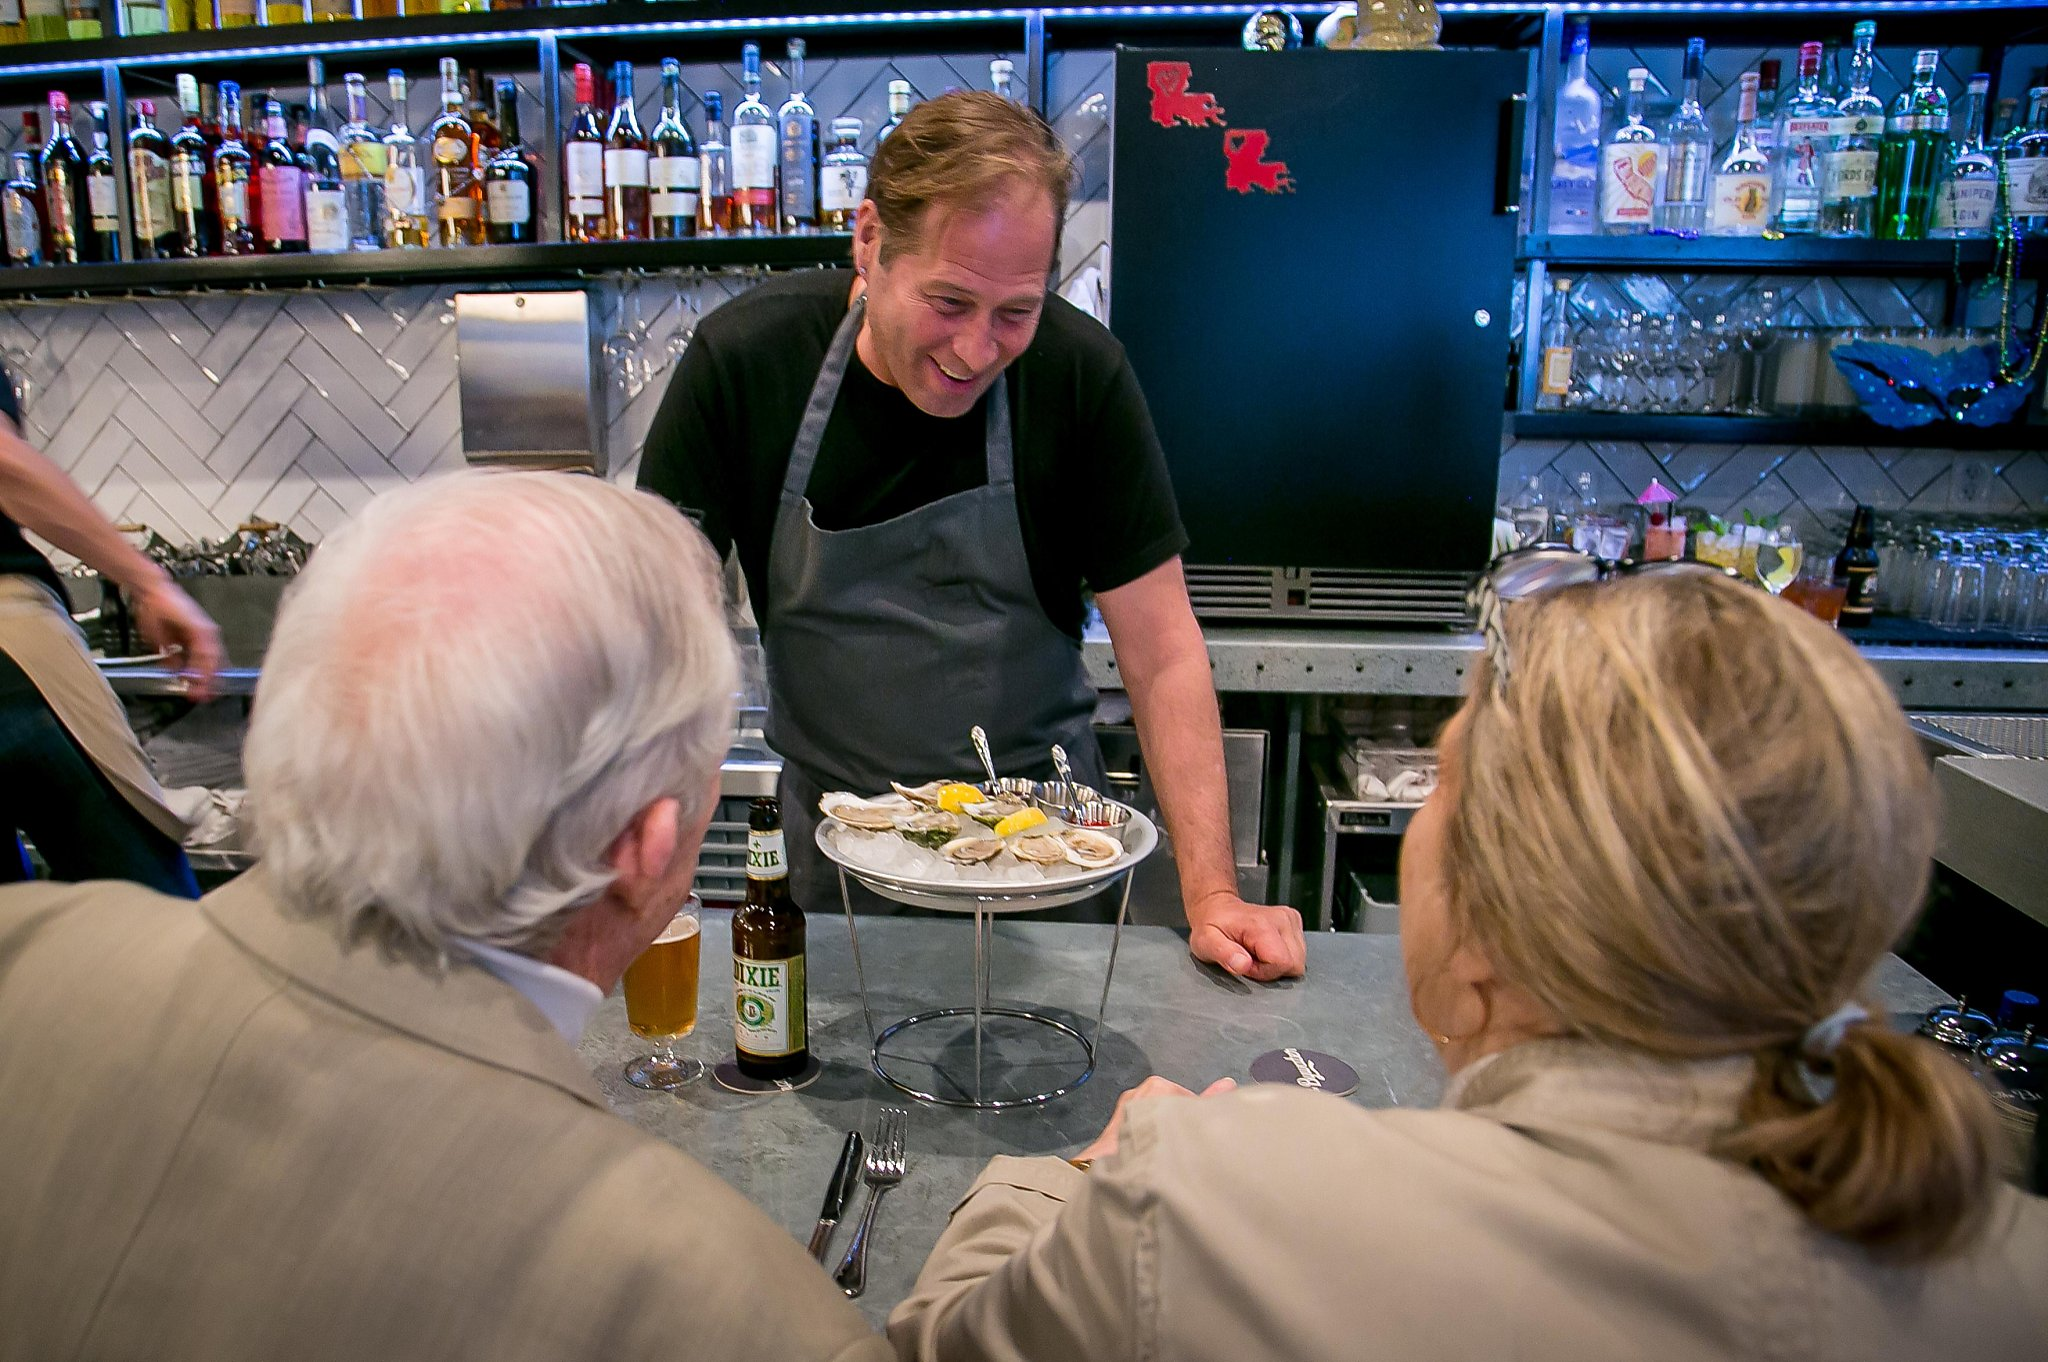 David Kinch's Mentone and other new Bay Area restaurants open for takeout during coronavirus